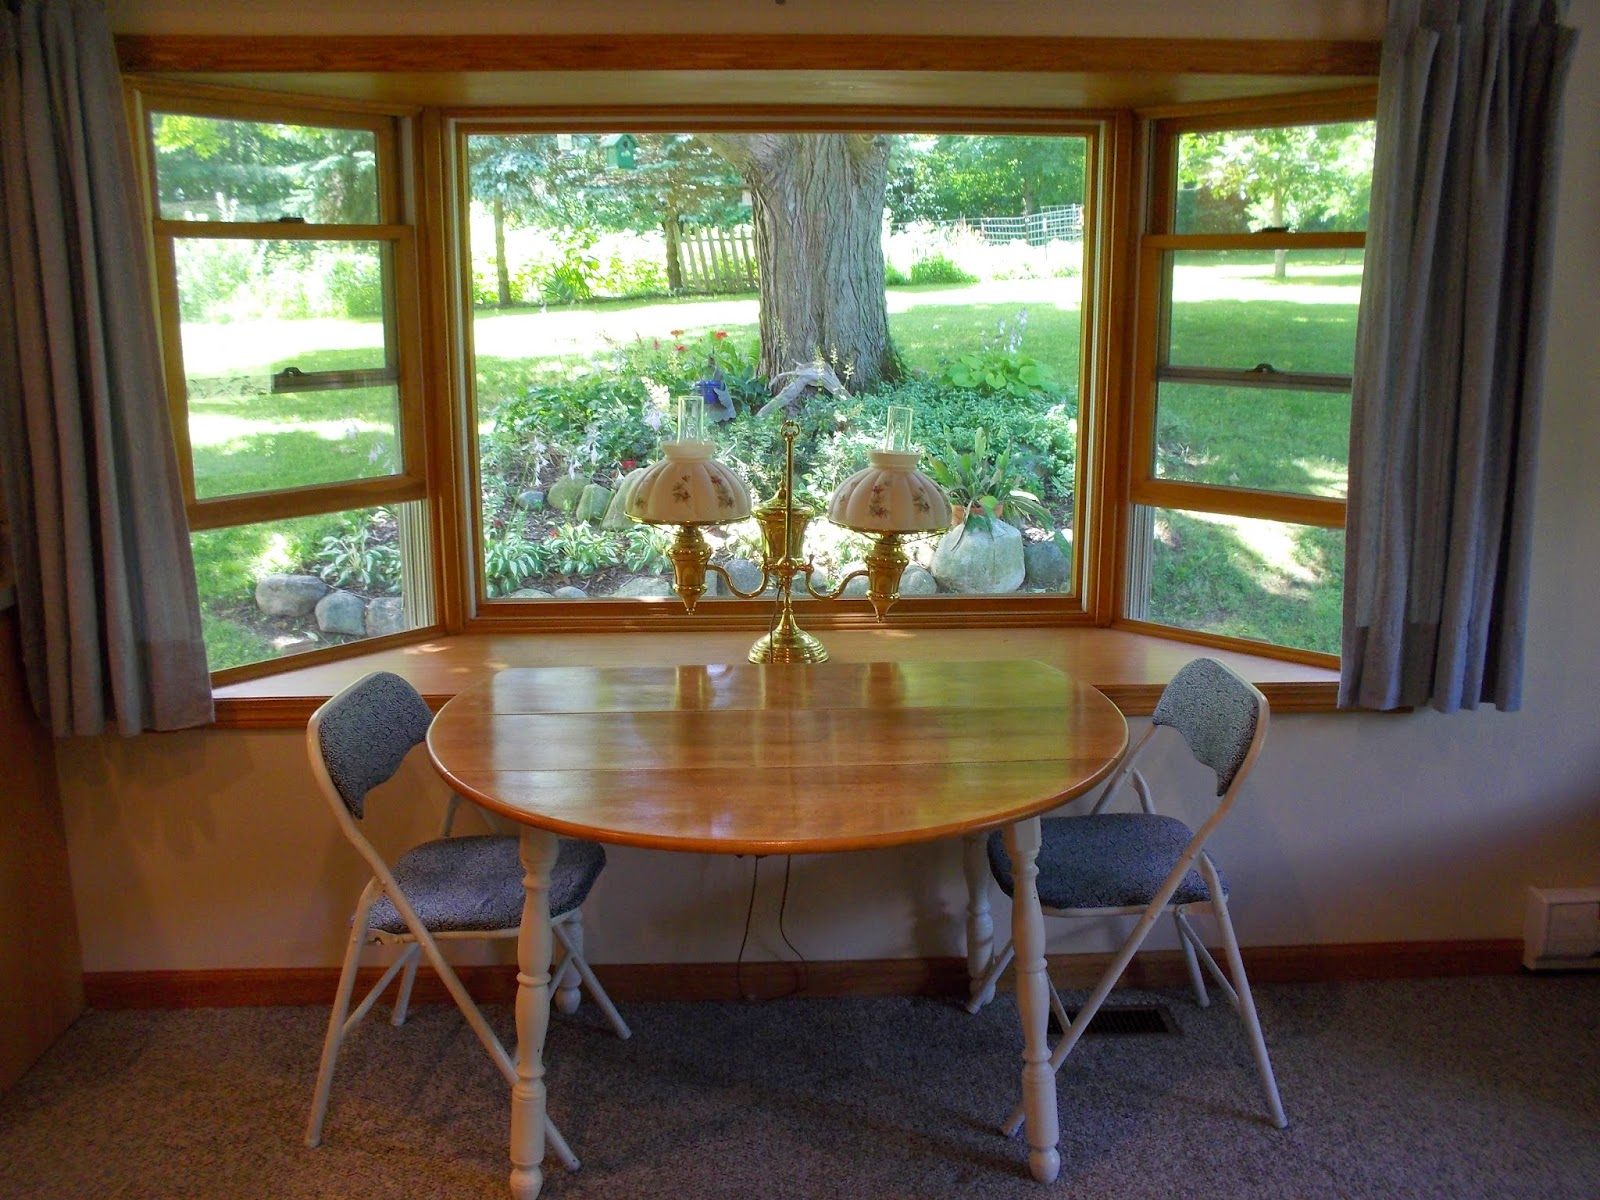 Enjoy the beautiful bay windows at The Hutch, a bed and breakfast in Hillsdale, MI.